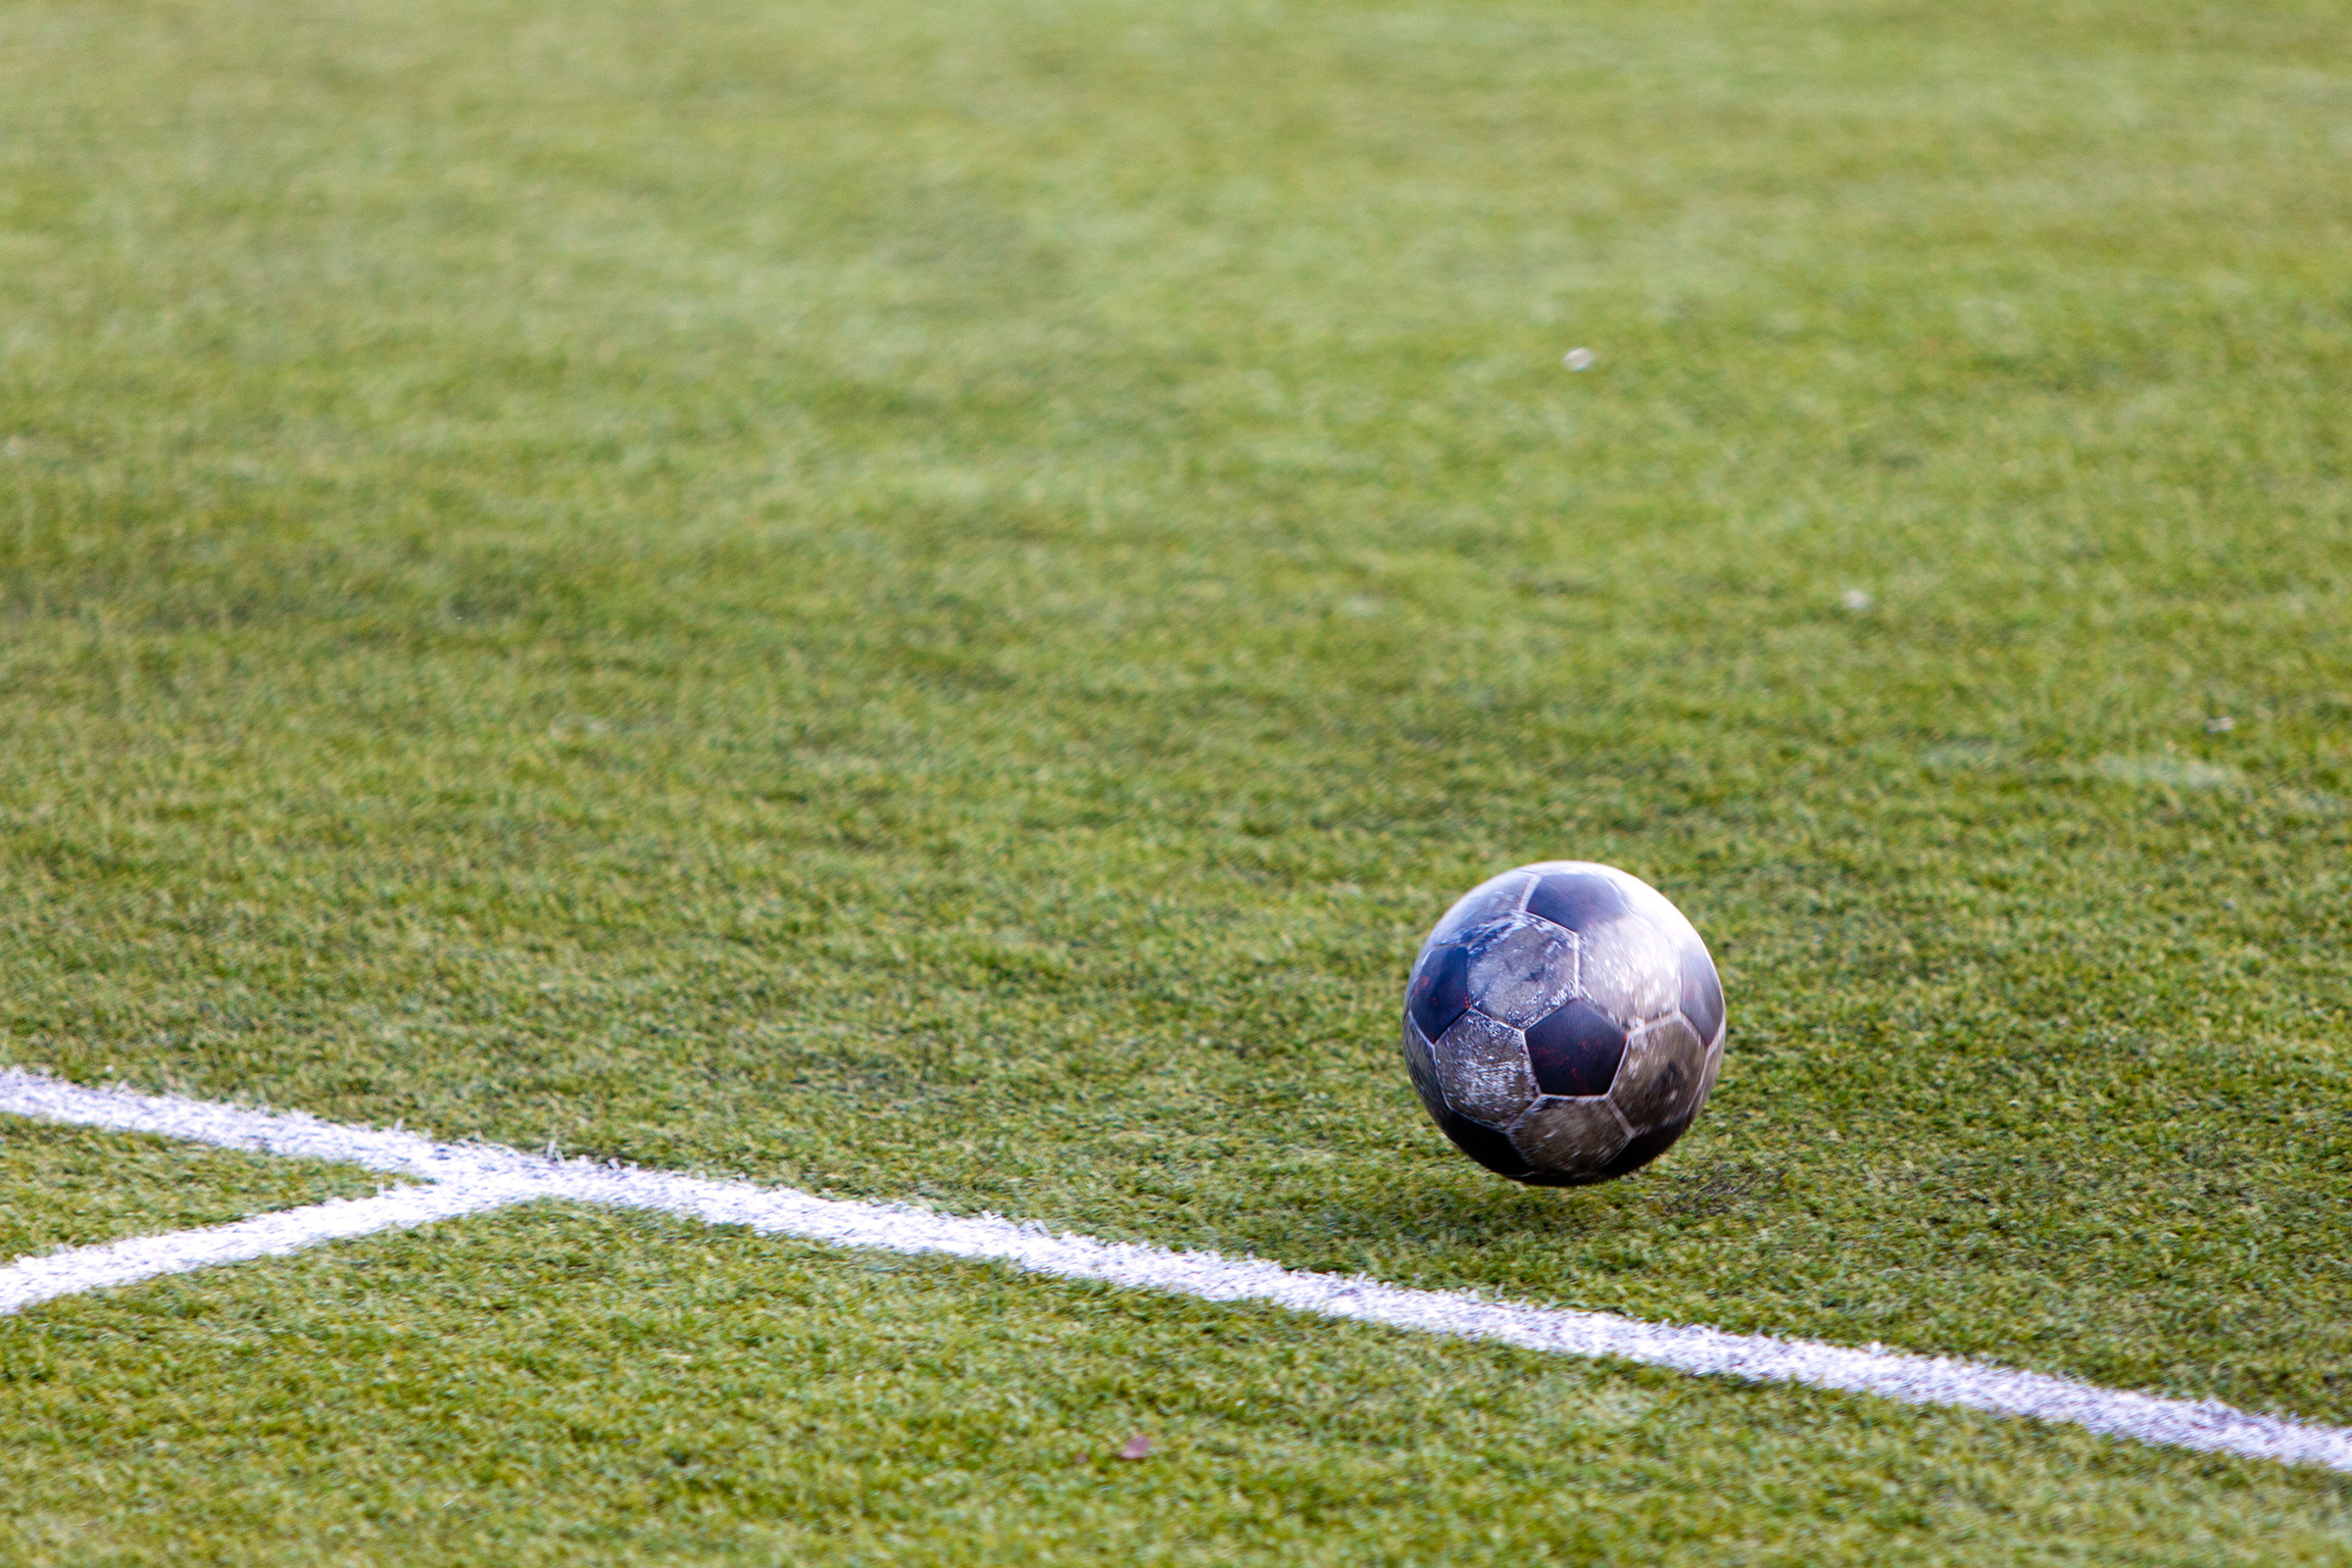 Soccer, Activity, Games, Line, Leisure, HQ Photo